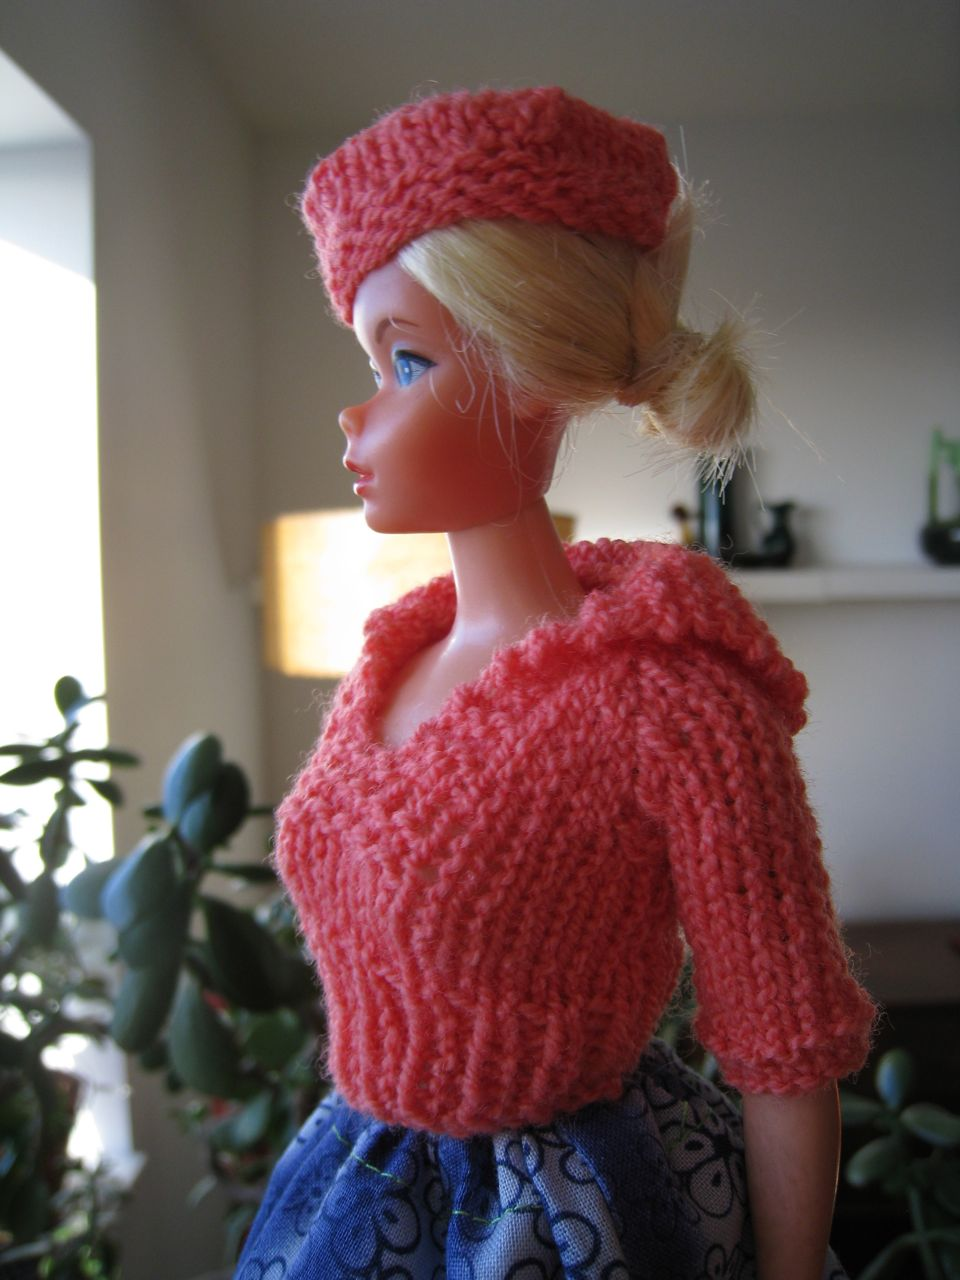 Best Barbie Knits: FREE PATTERN - Barbie Pullover with ...